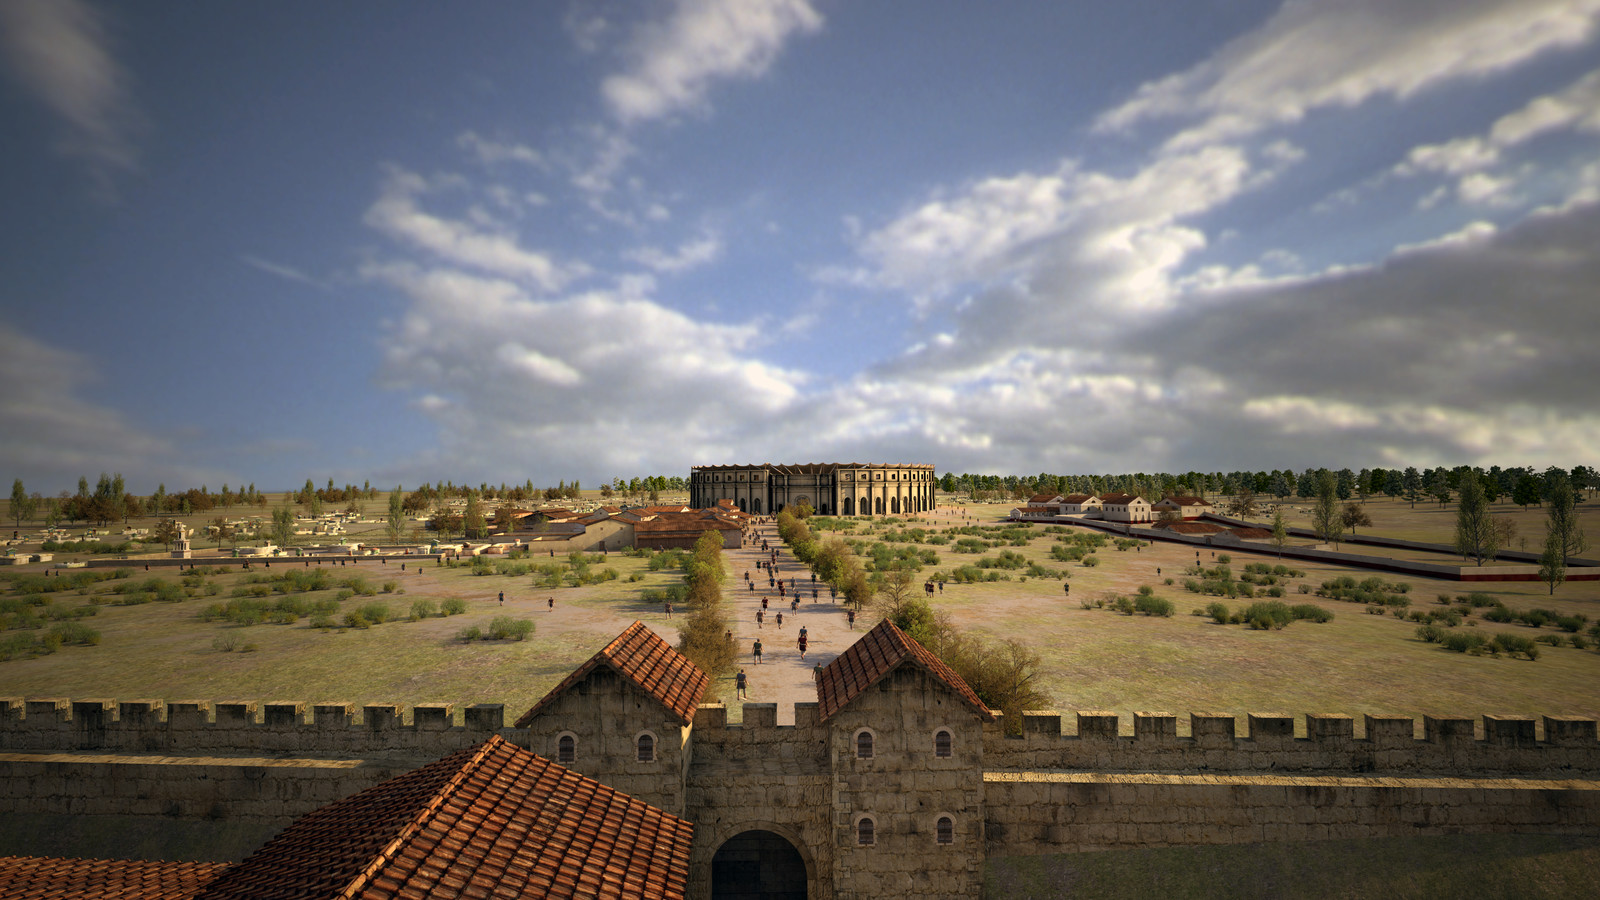 View from city wall towards amphitheater